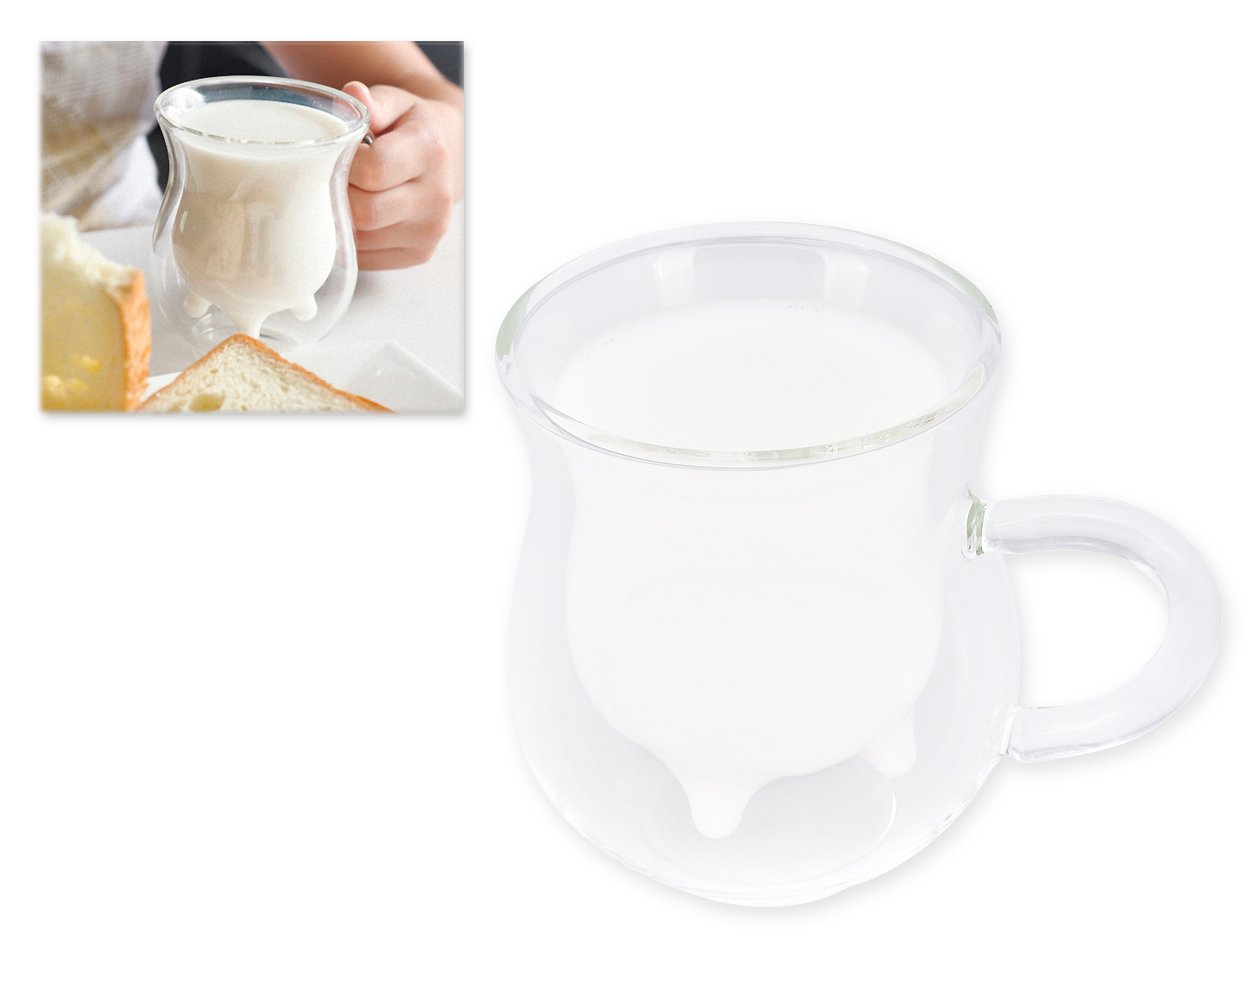 Ace Select Double Walled Glass Milk Cup, Creative Beautiful Gifts 3D Double Layer Crystal Glass Cup Mug - Cute Calf Cow Udder Shaped Creamer Pitcher Milk Bottle